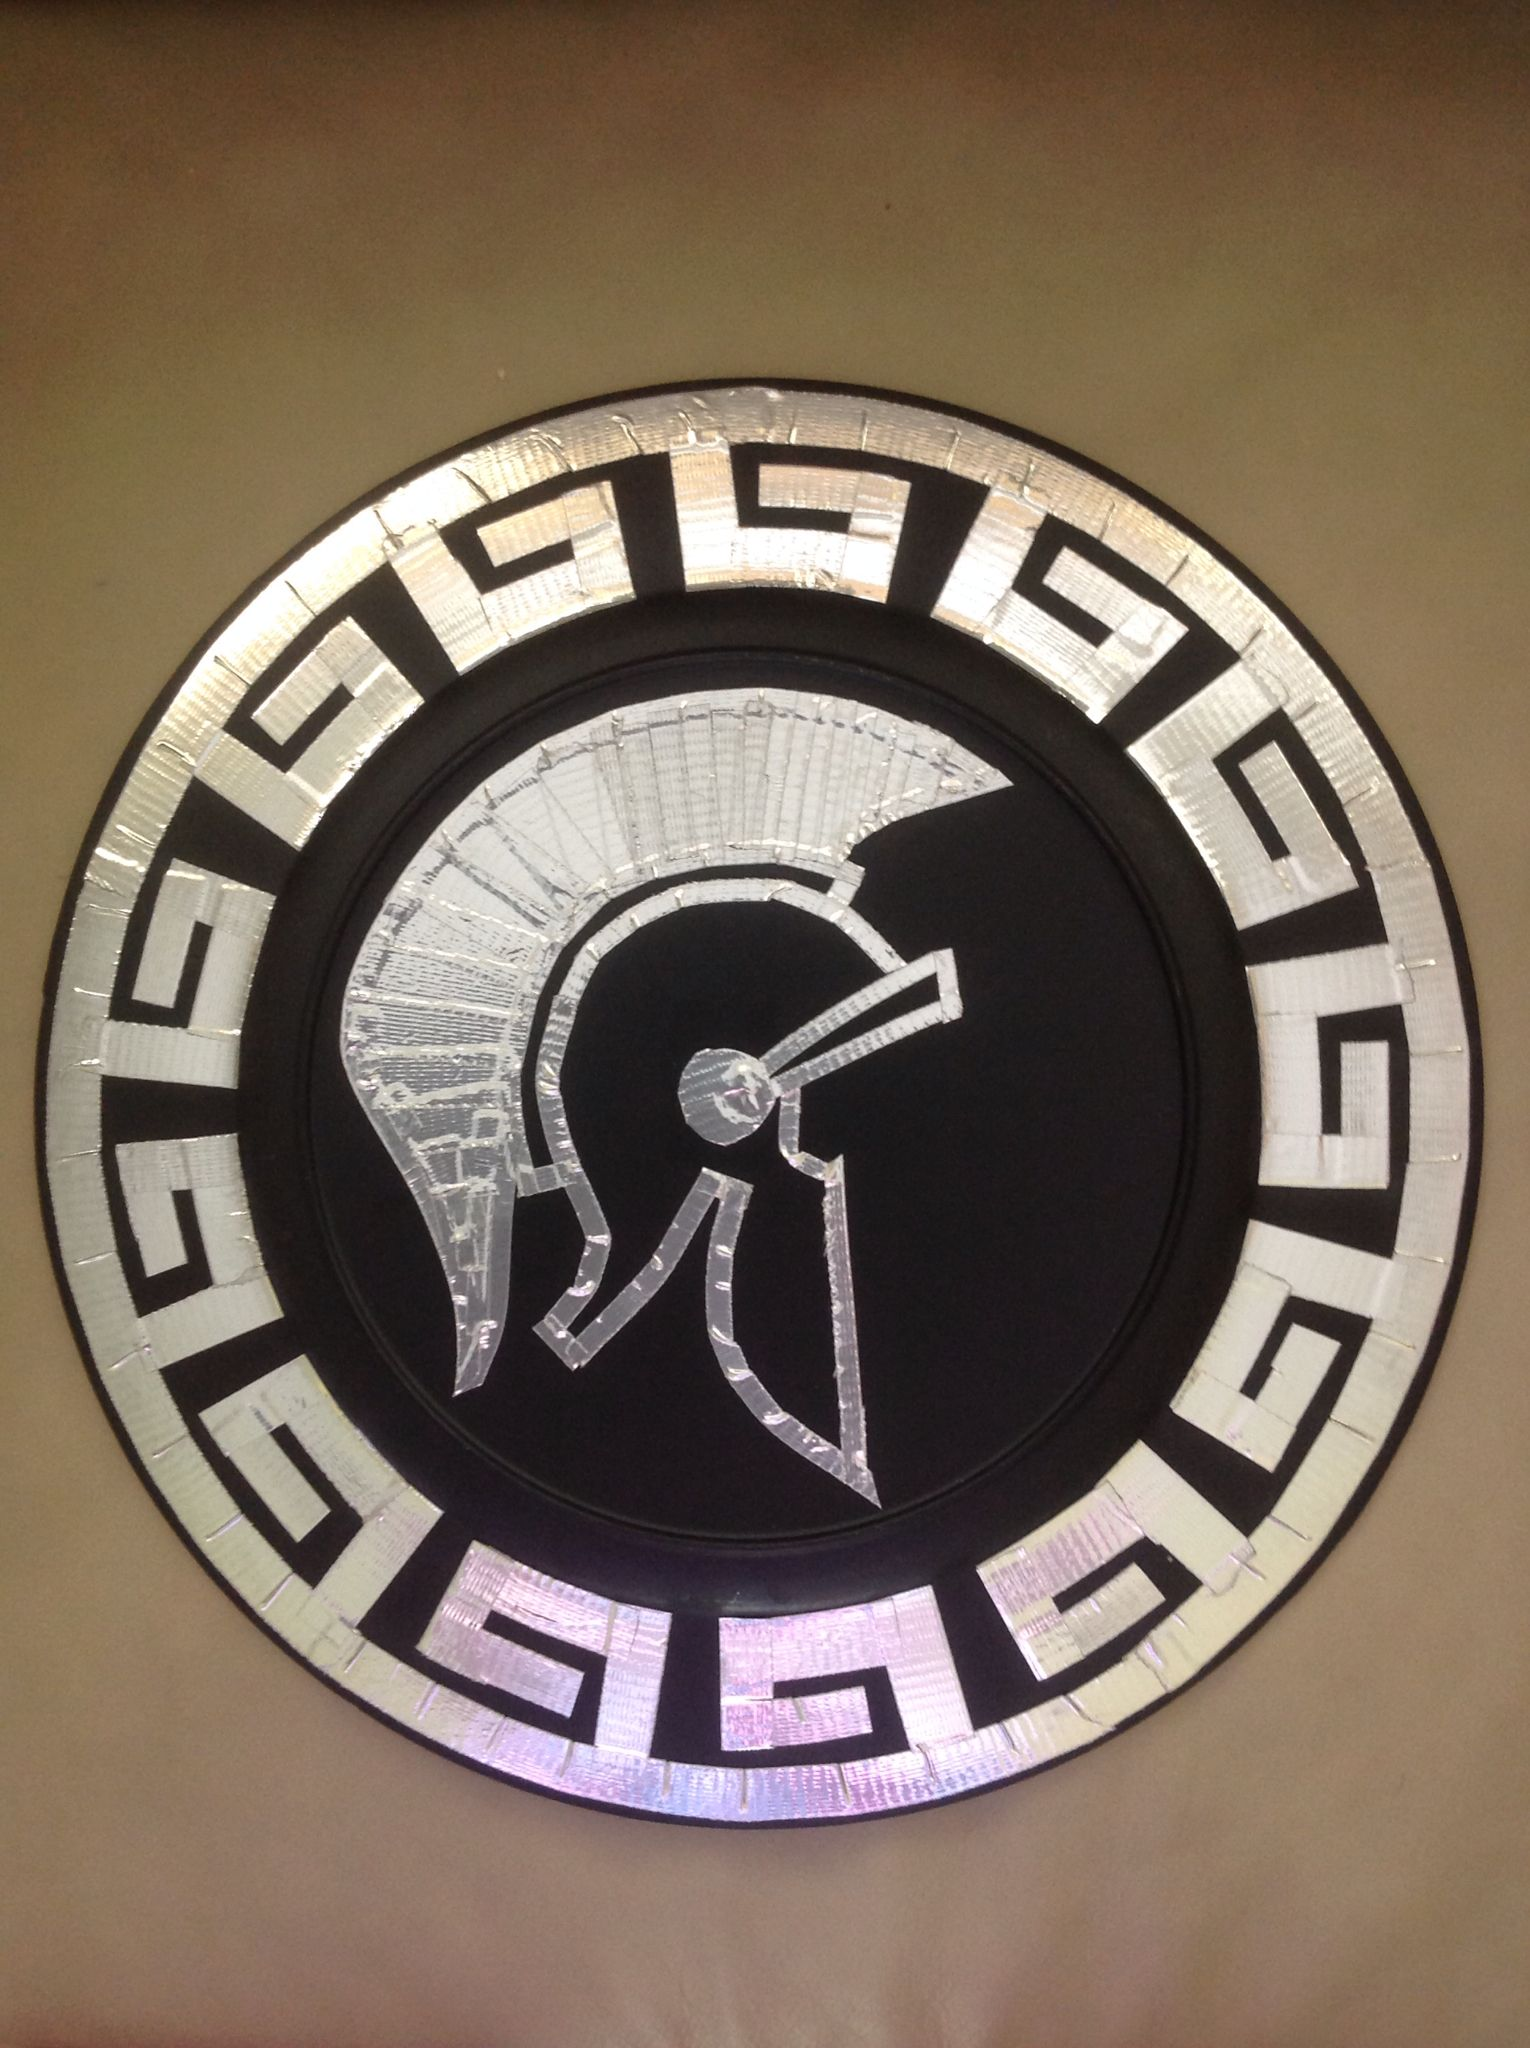 Ares shield with greek border made it pinterest ares shield with greek border biocorpaavc Image collections